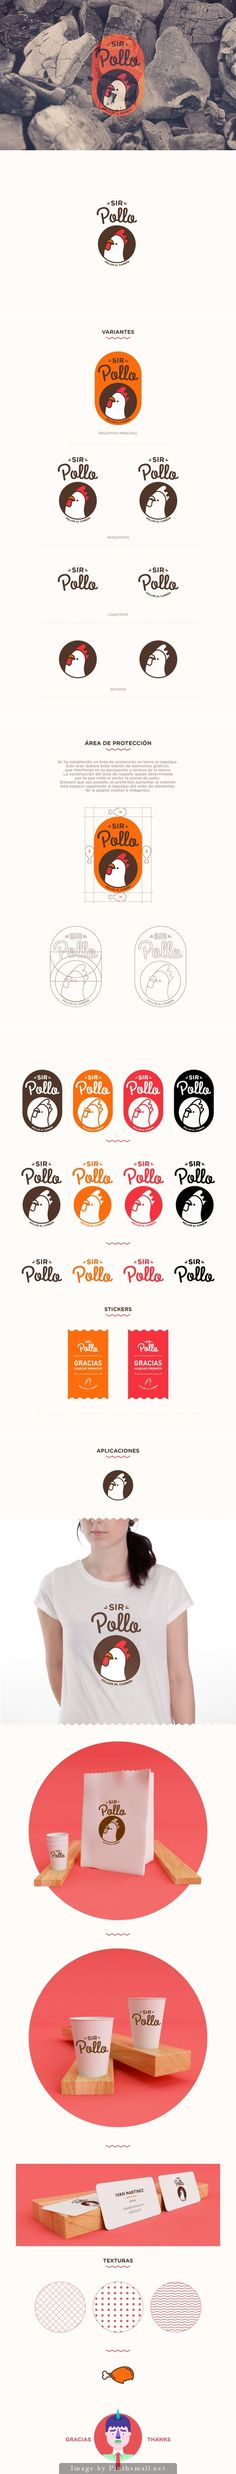 Here you go Jenny SIR POLLO by AARON MARTINEZ, via Behance has a cute logo on the packaging PD